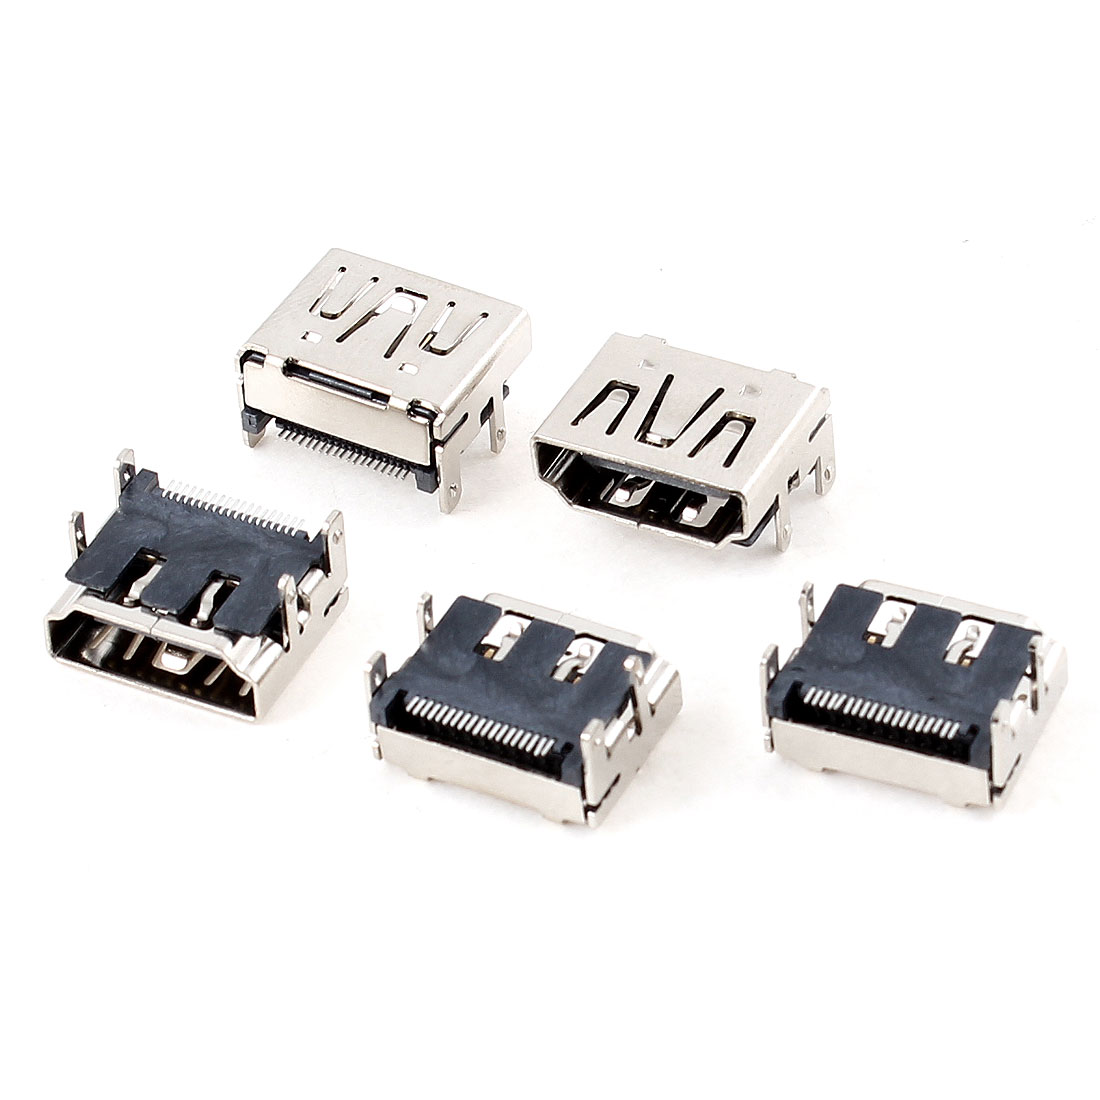 SMT 19 Pin HDMI Connector Female Jack Socket Silver Tone 5pcs